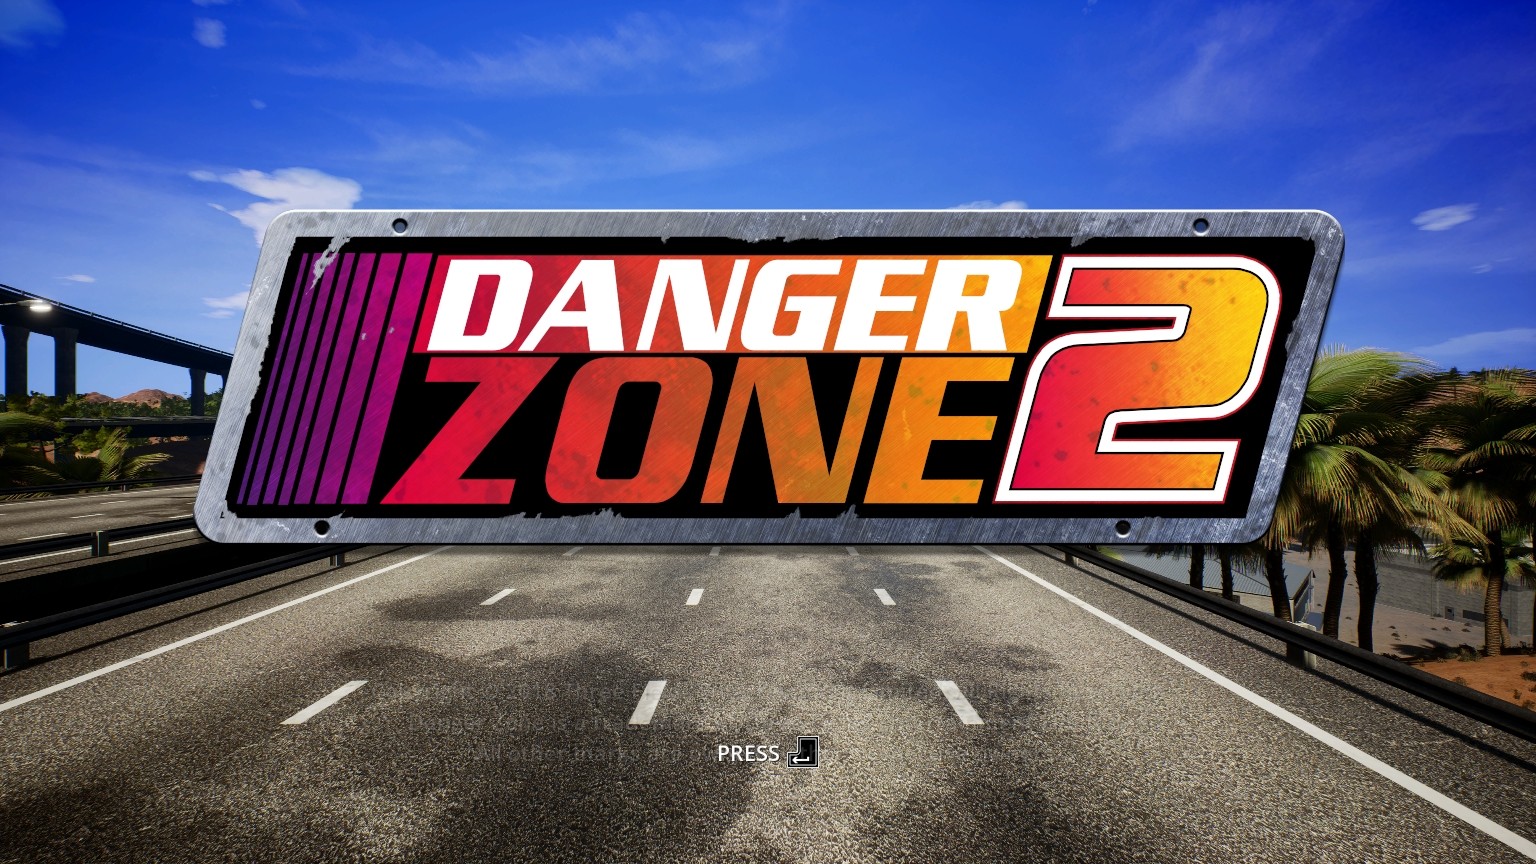 DangerZone-Win64-Shipping_2018_07_19_23_51_03_559.jpg